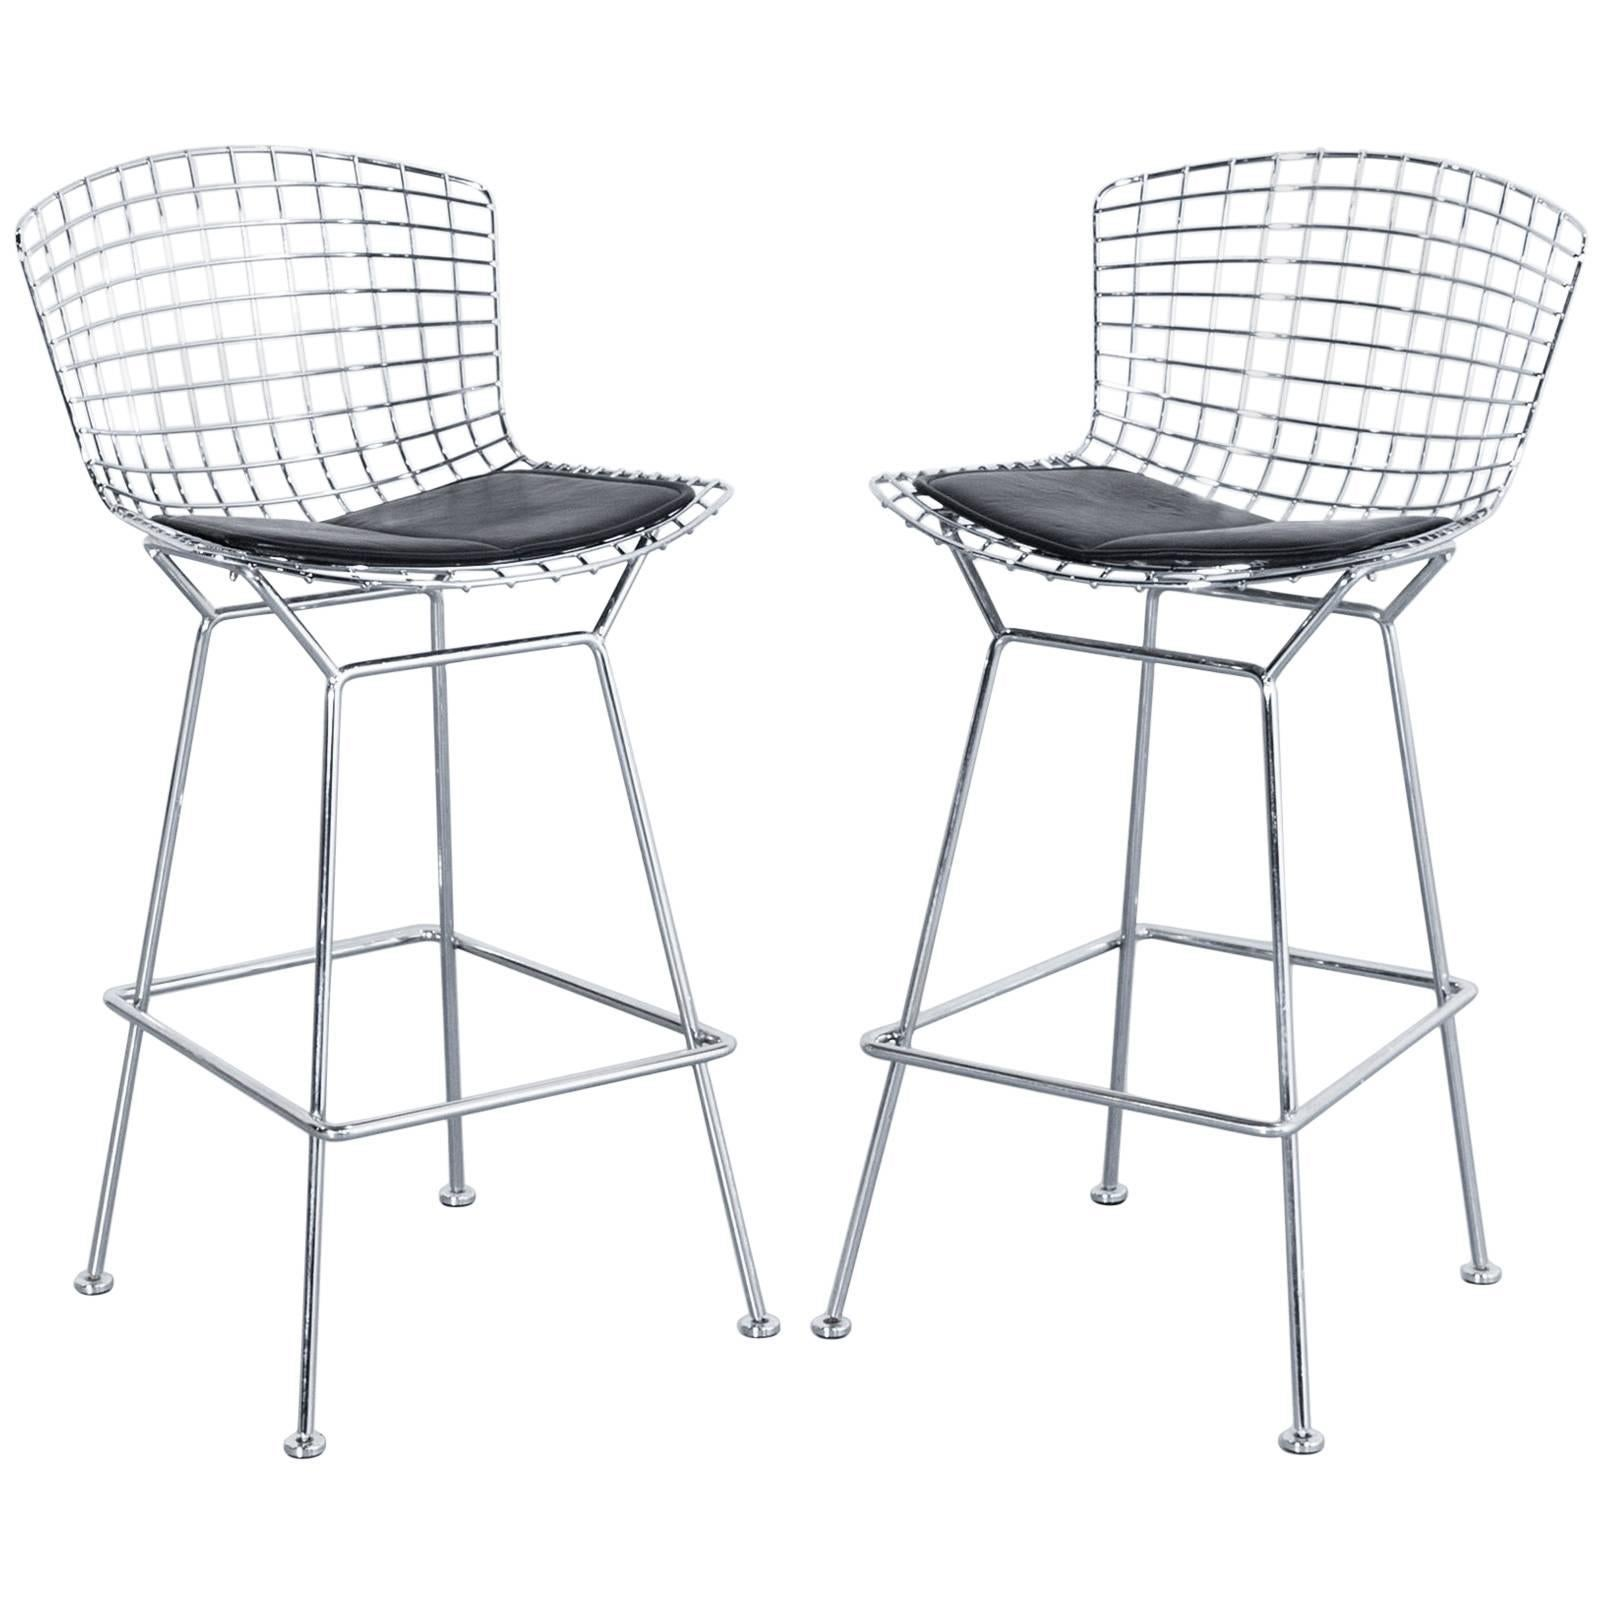 Set Of Two Walter Knoll Harry Bertoia Barstools, Designer Chairs For Sale